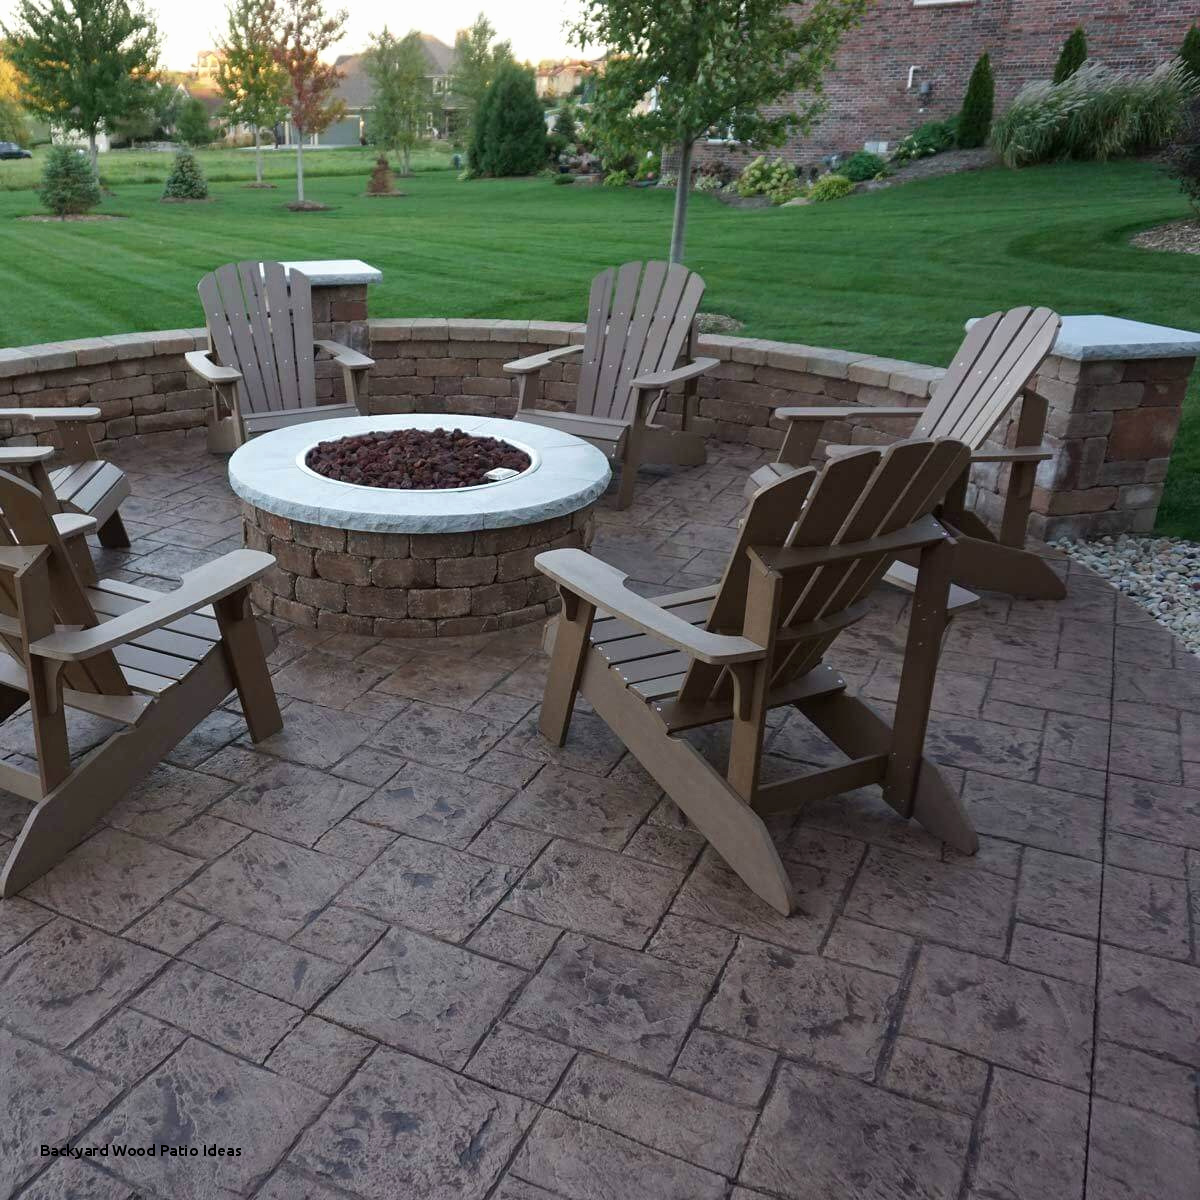 outdoor side table plans fireplace diy fresh dining lovely backyard wood patio ideas accent battery powered standard lamp wooden trestle chippendale chairs walnut coffee with